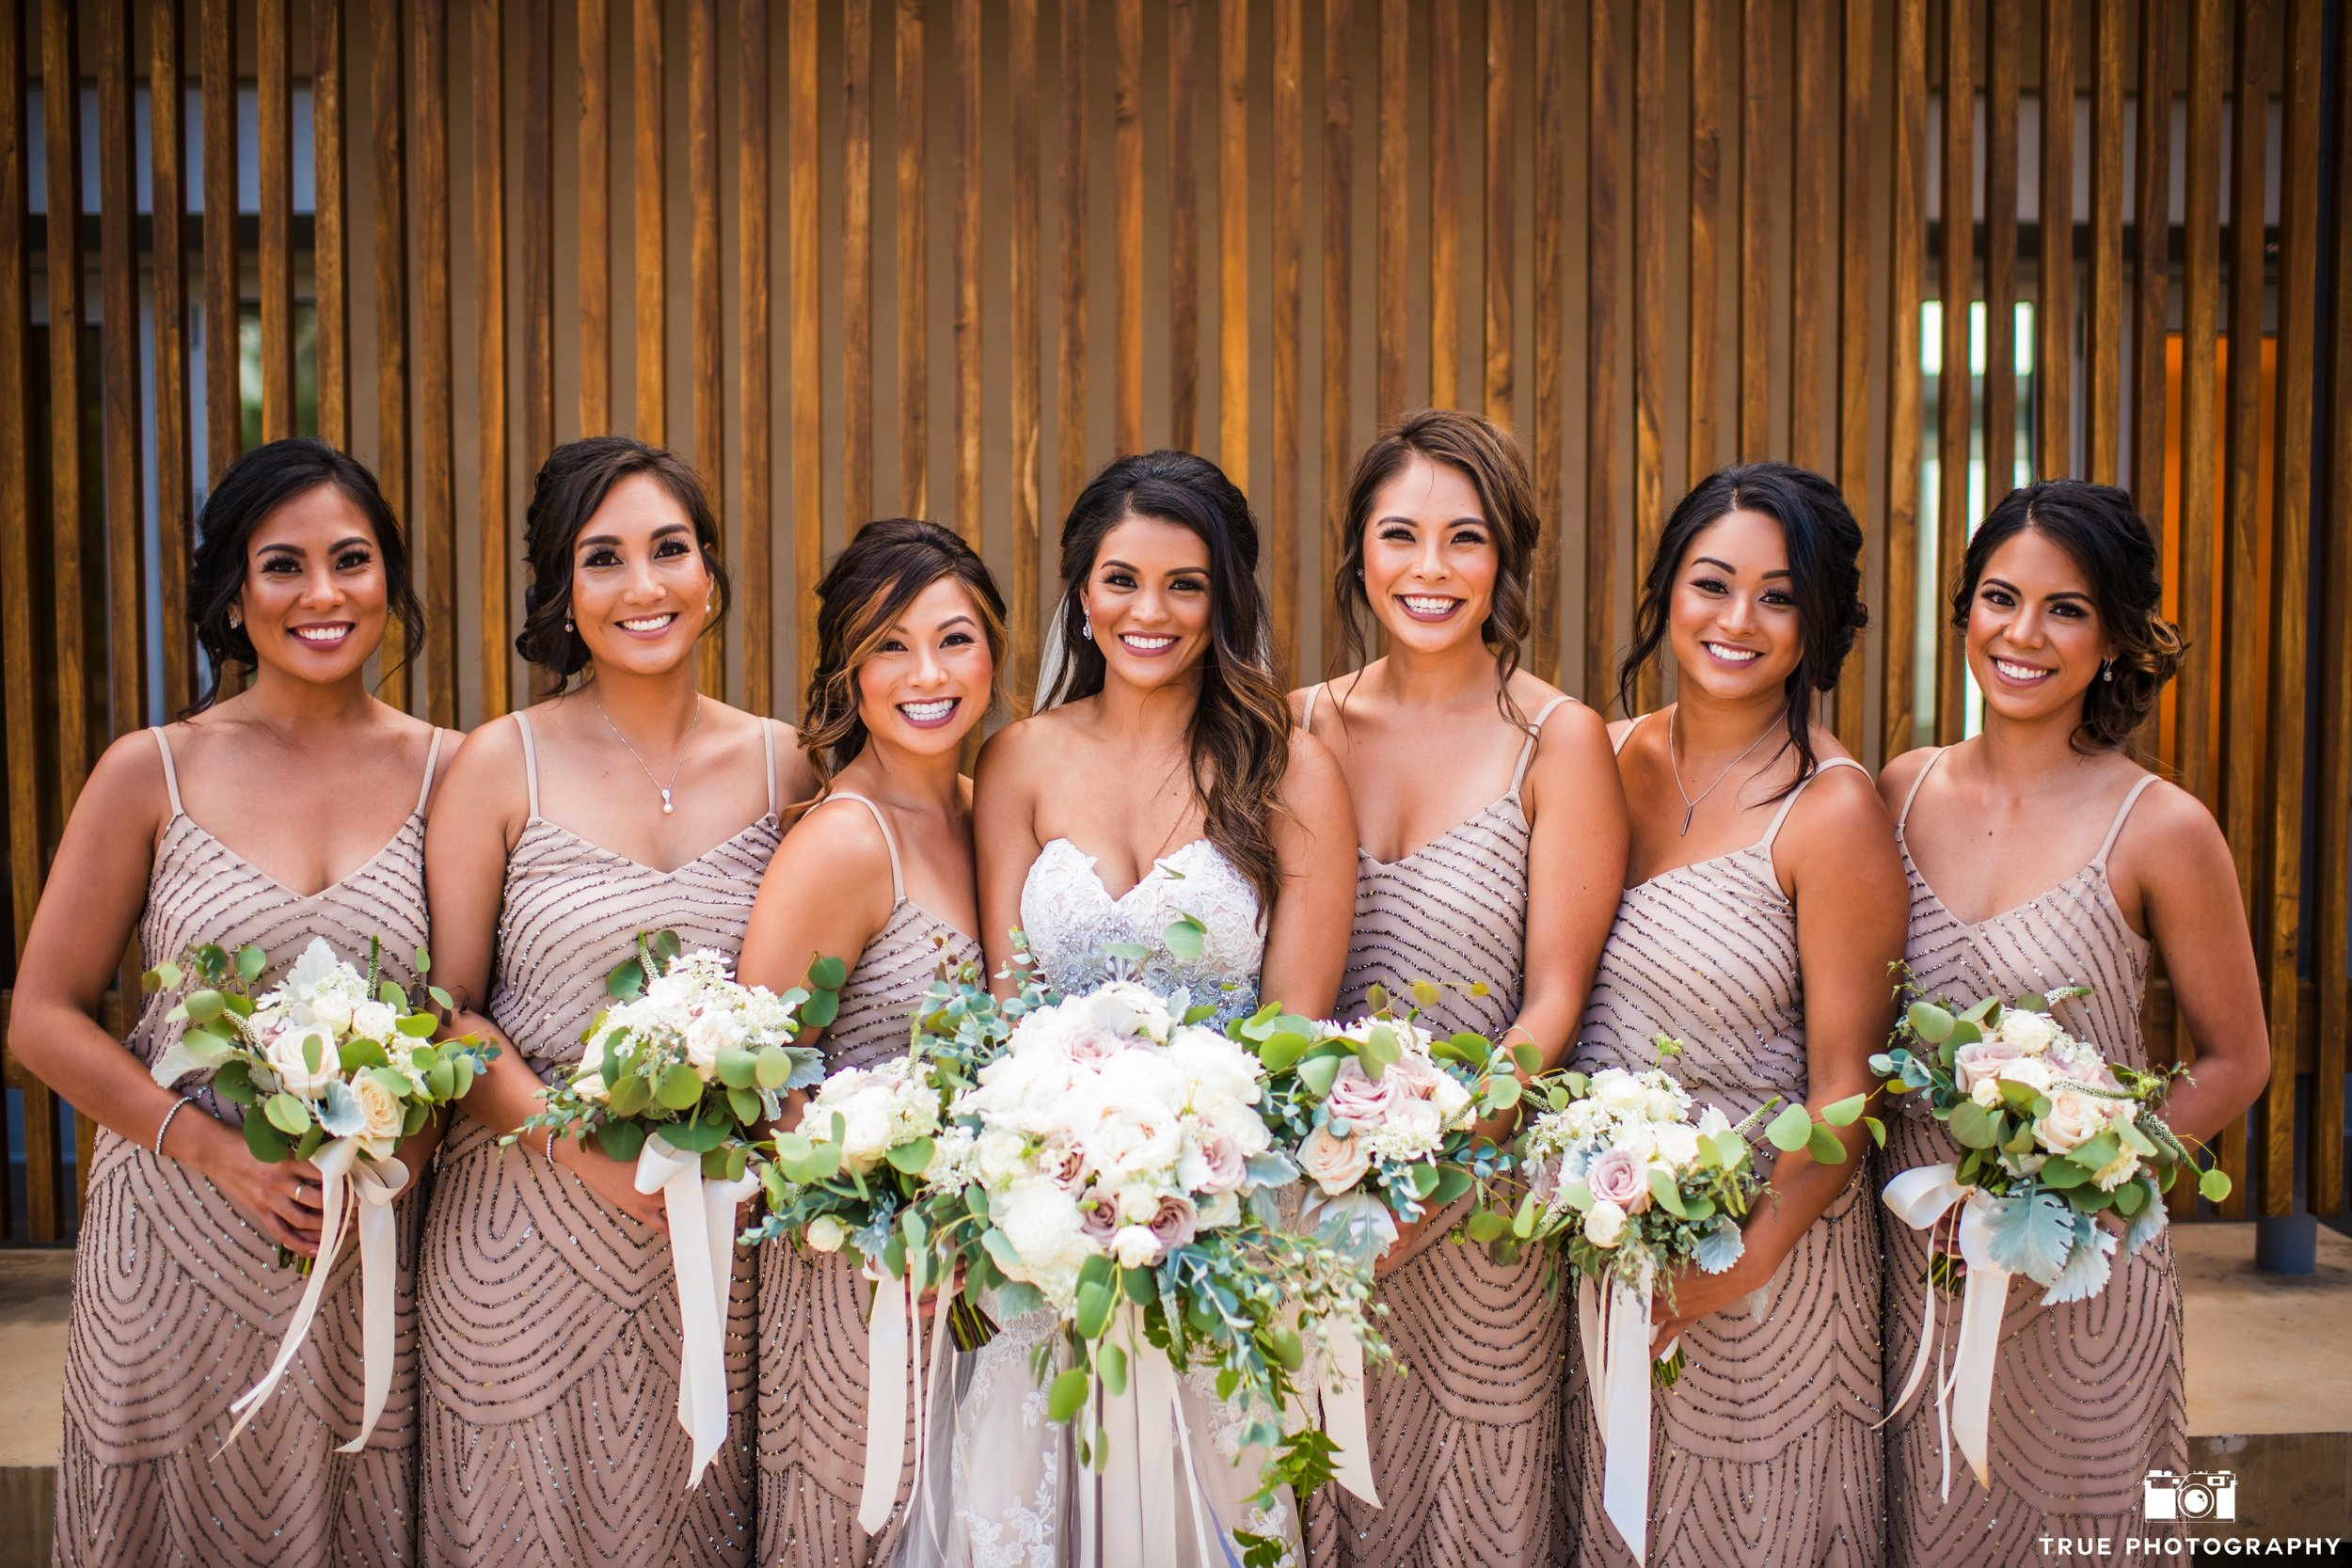 Photography  True Photography ||  Wedding Dress  The White Flower Bridal Boutique ||  Hair  Cara Mia Makeup Artistry & Hair Designs ||  Bridesmaids Dresses  Adrianna Papell || Click  here  for more of this wedding.